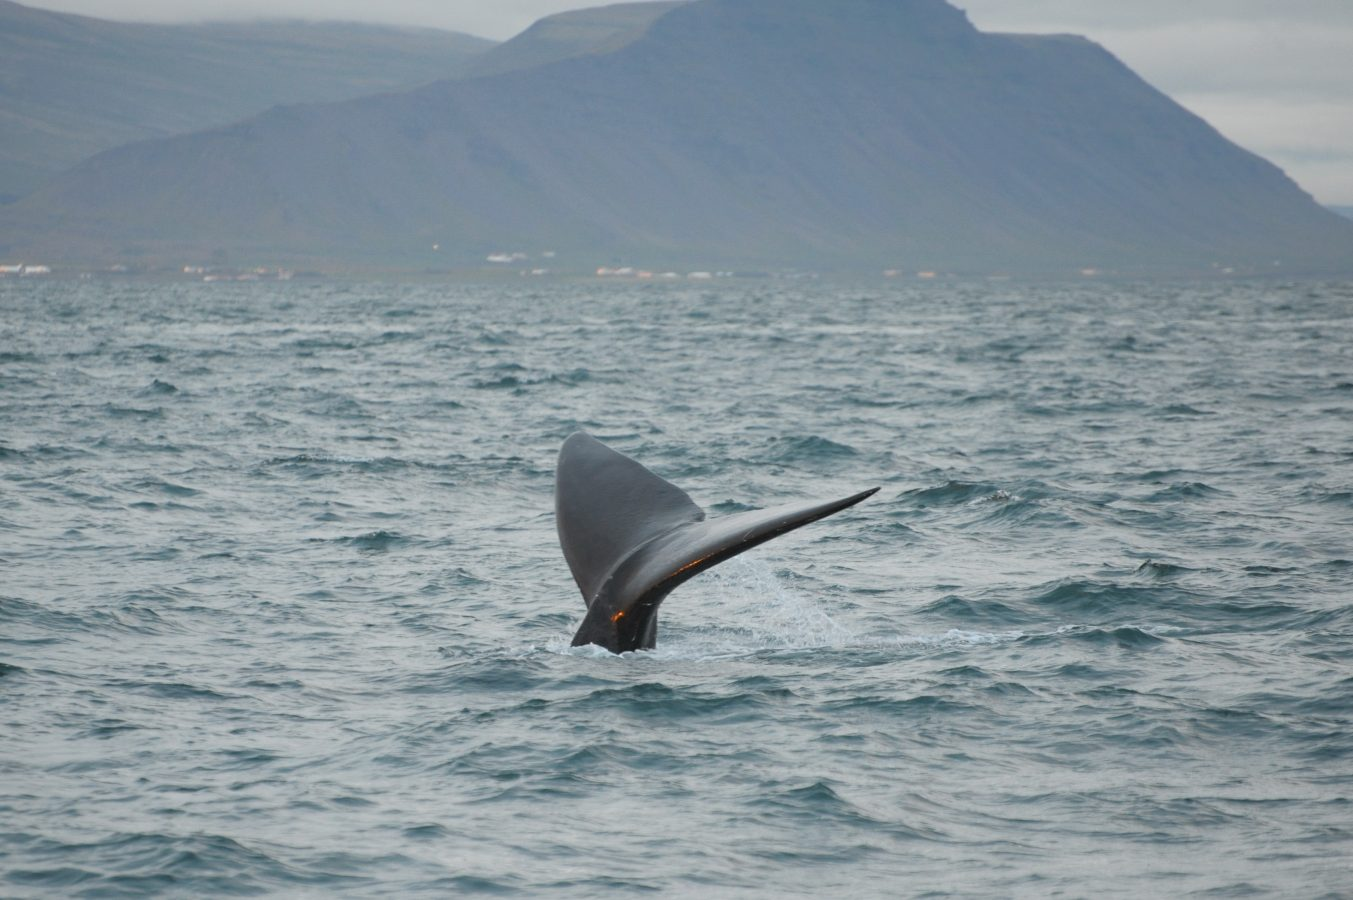 Mogul the North Atlantic right whale in Iceland